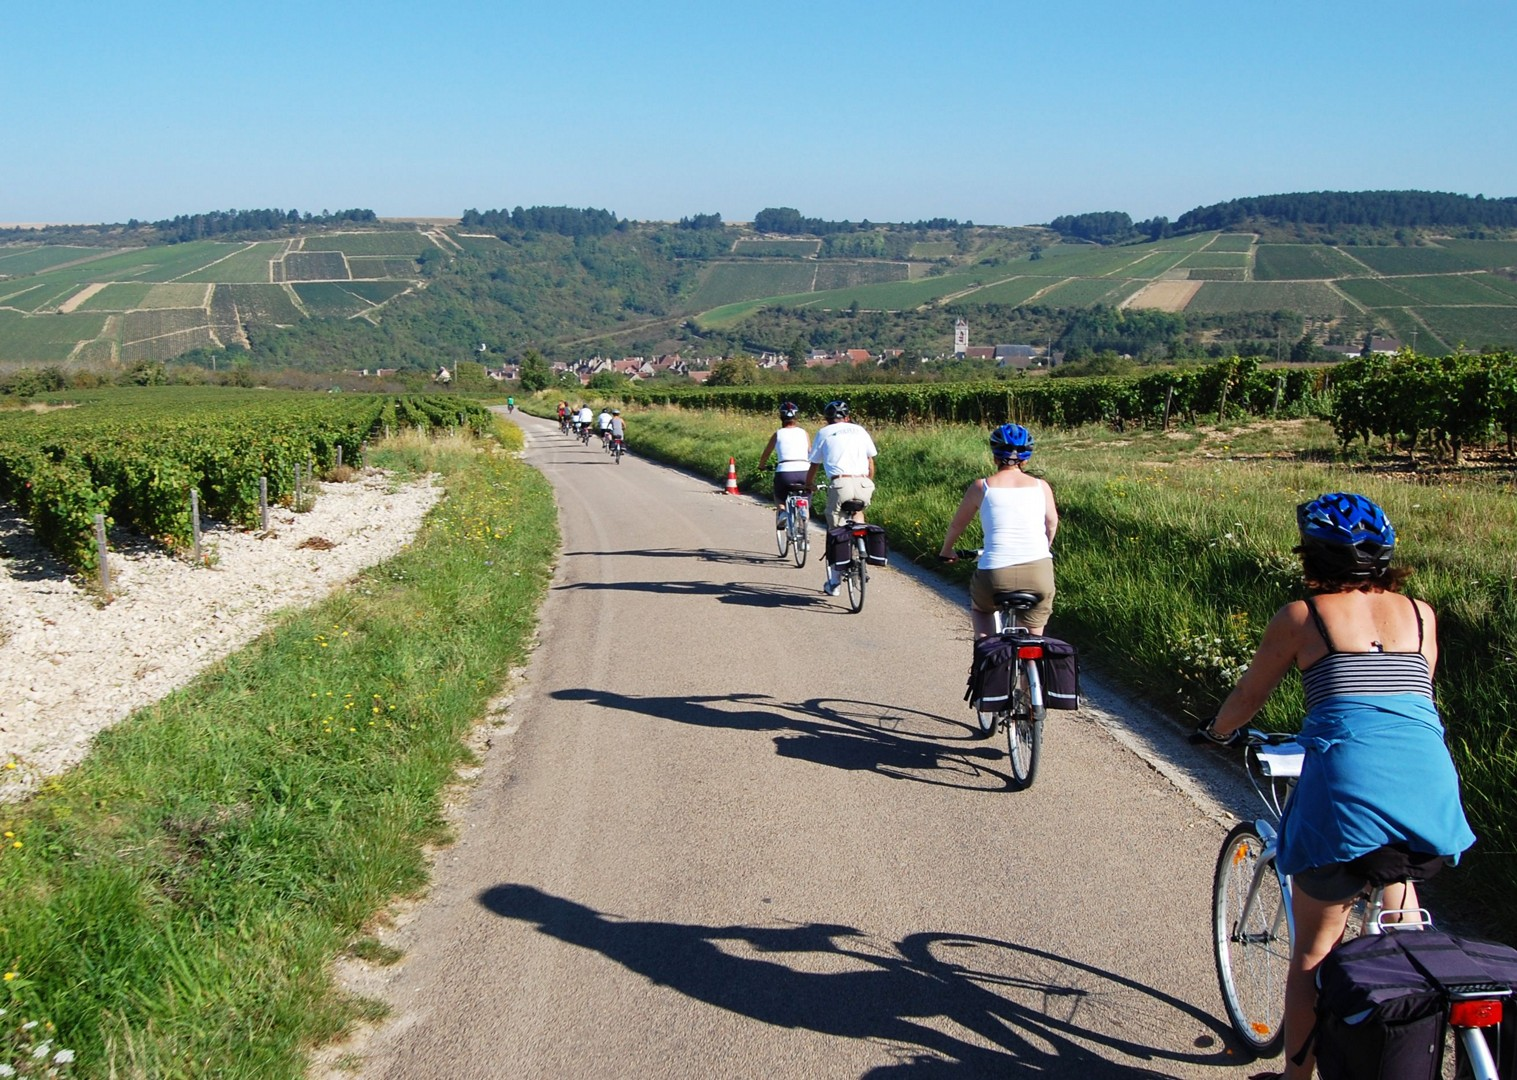 self-guided-leisure-cycling-holiday-france-burgundy-caves-and-canals.JPG - France - Burgundy - Caves and Canals - Self-Guided Leisure Cycling Holiday - Leisure Cycling